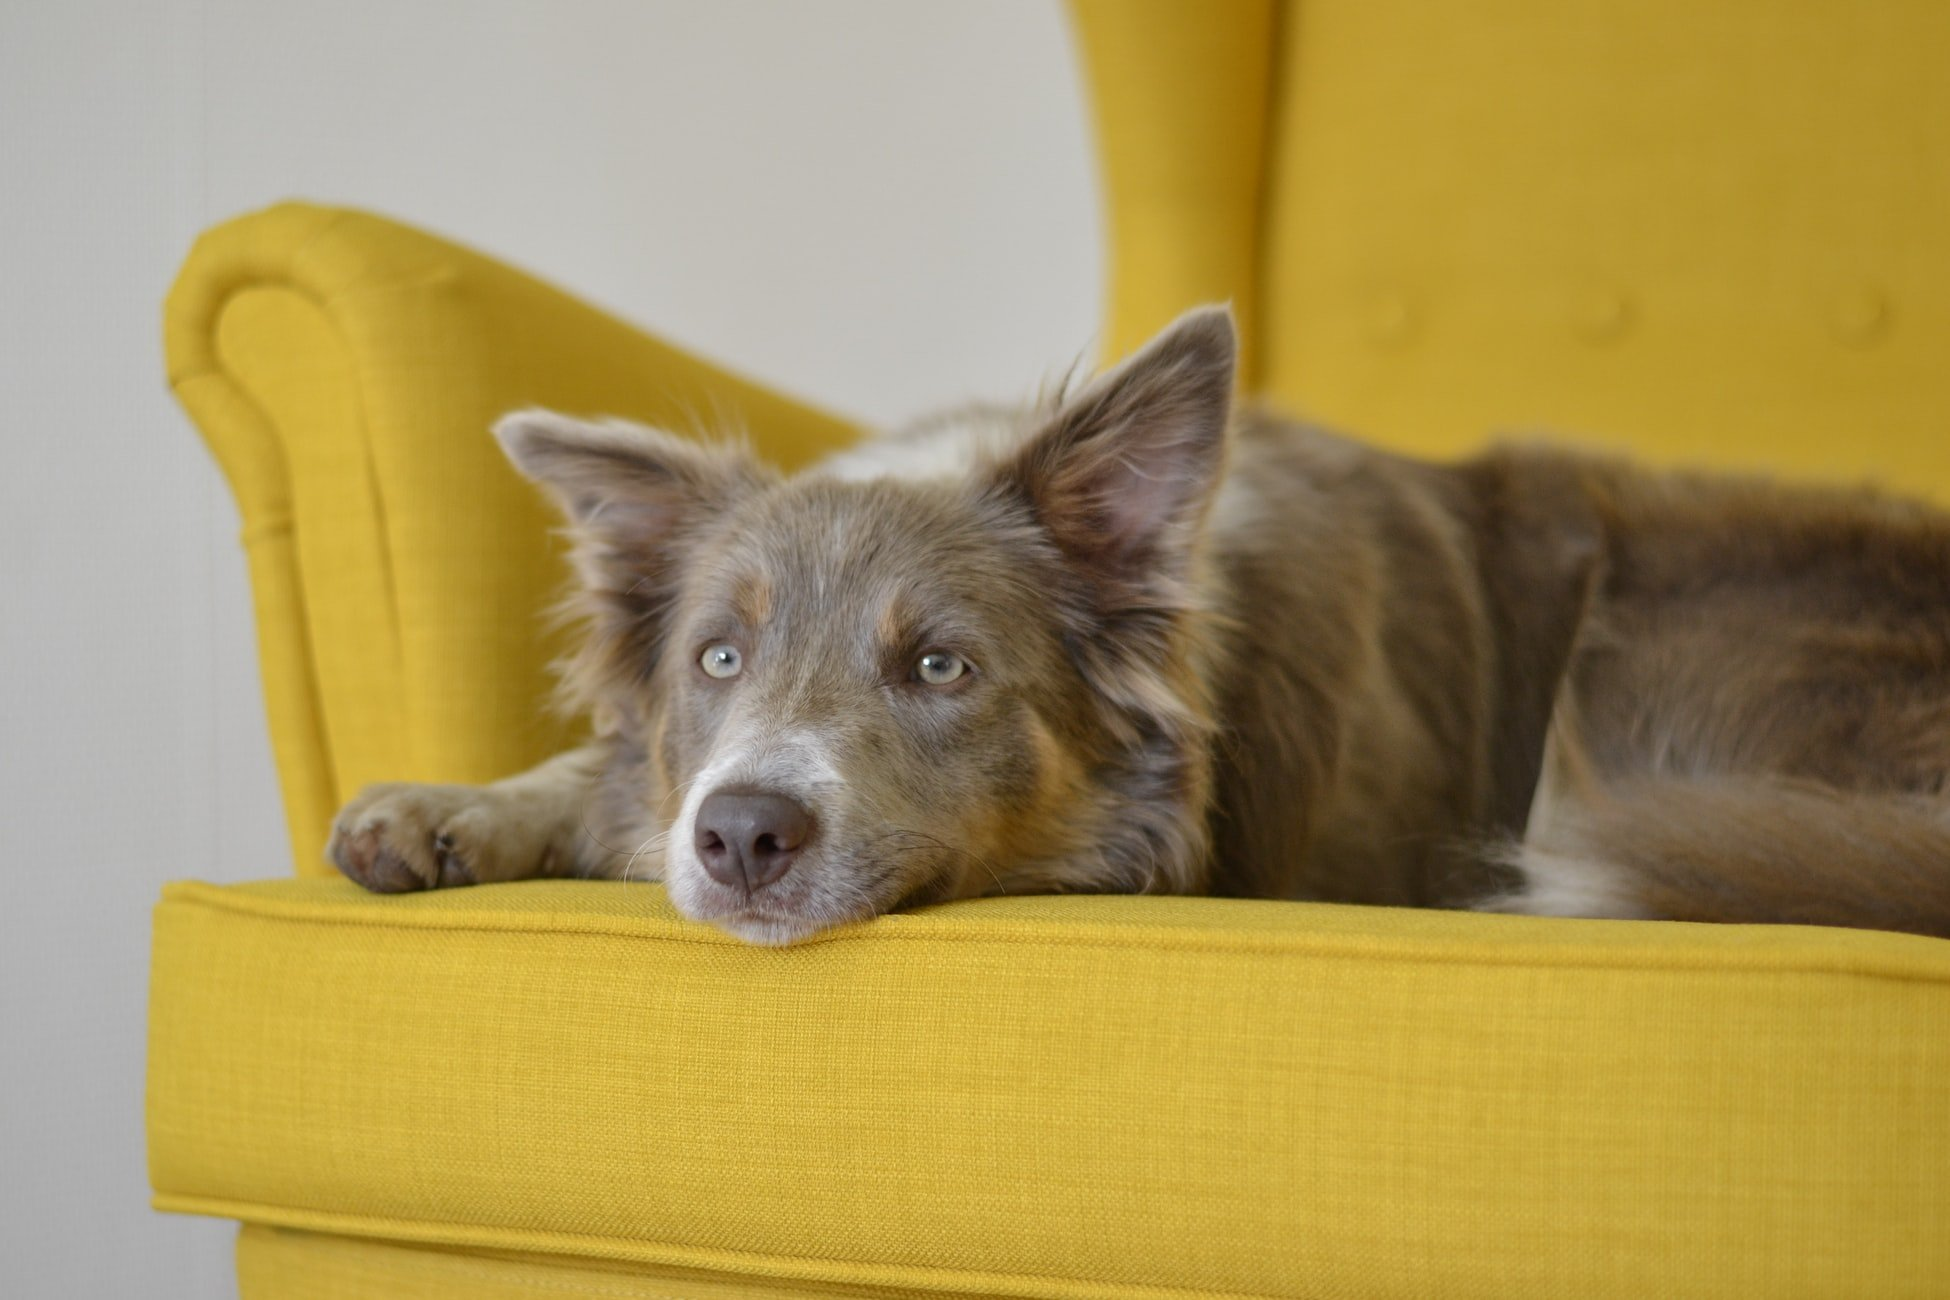 A portrait of a dog lying on a yellow couch | Photo: Unsplash